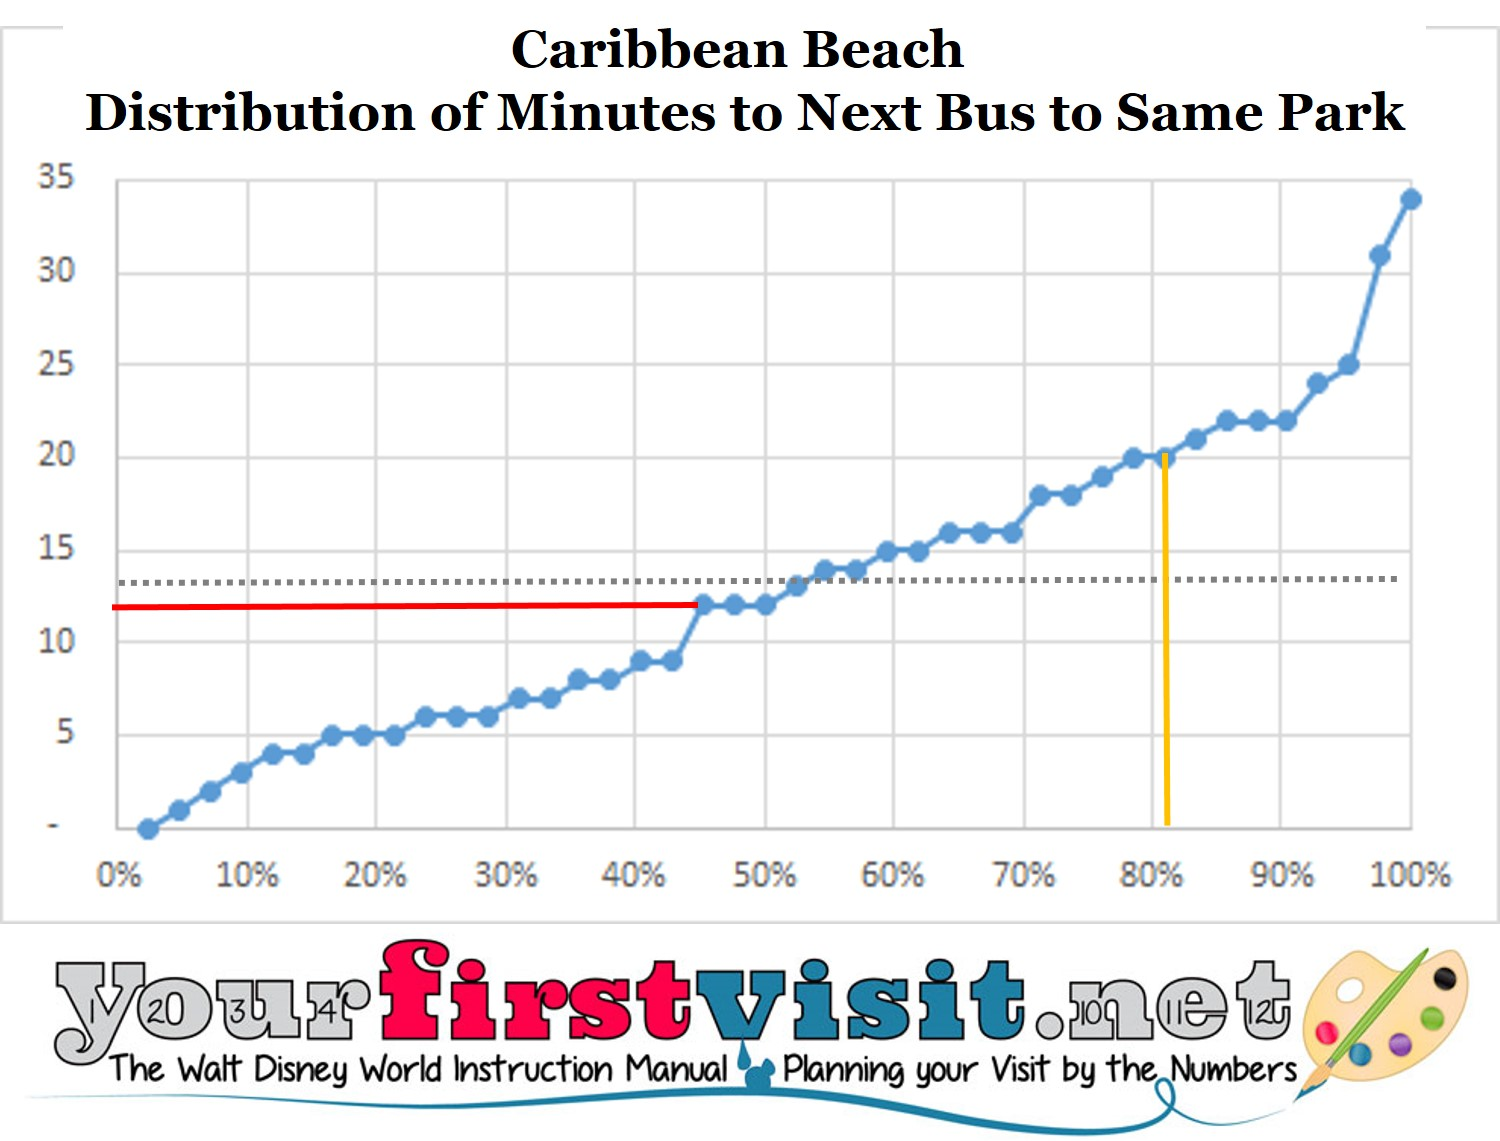 caribbean-beach-time-to-next-bus-to-same-park-from-yourfirstvisit-net